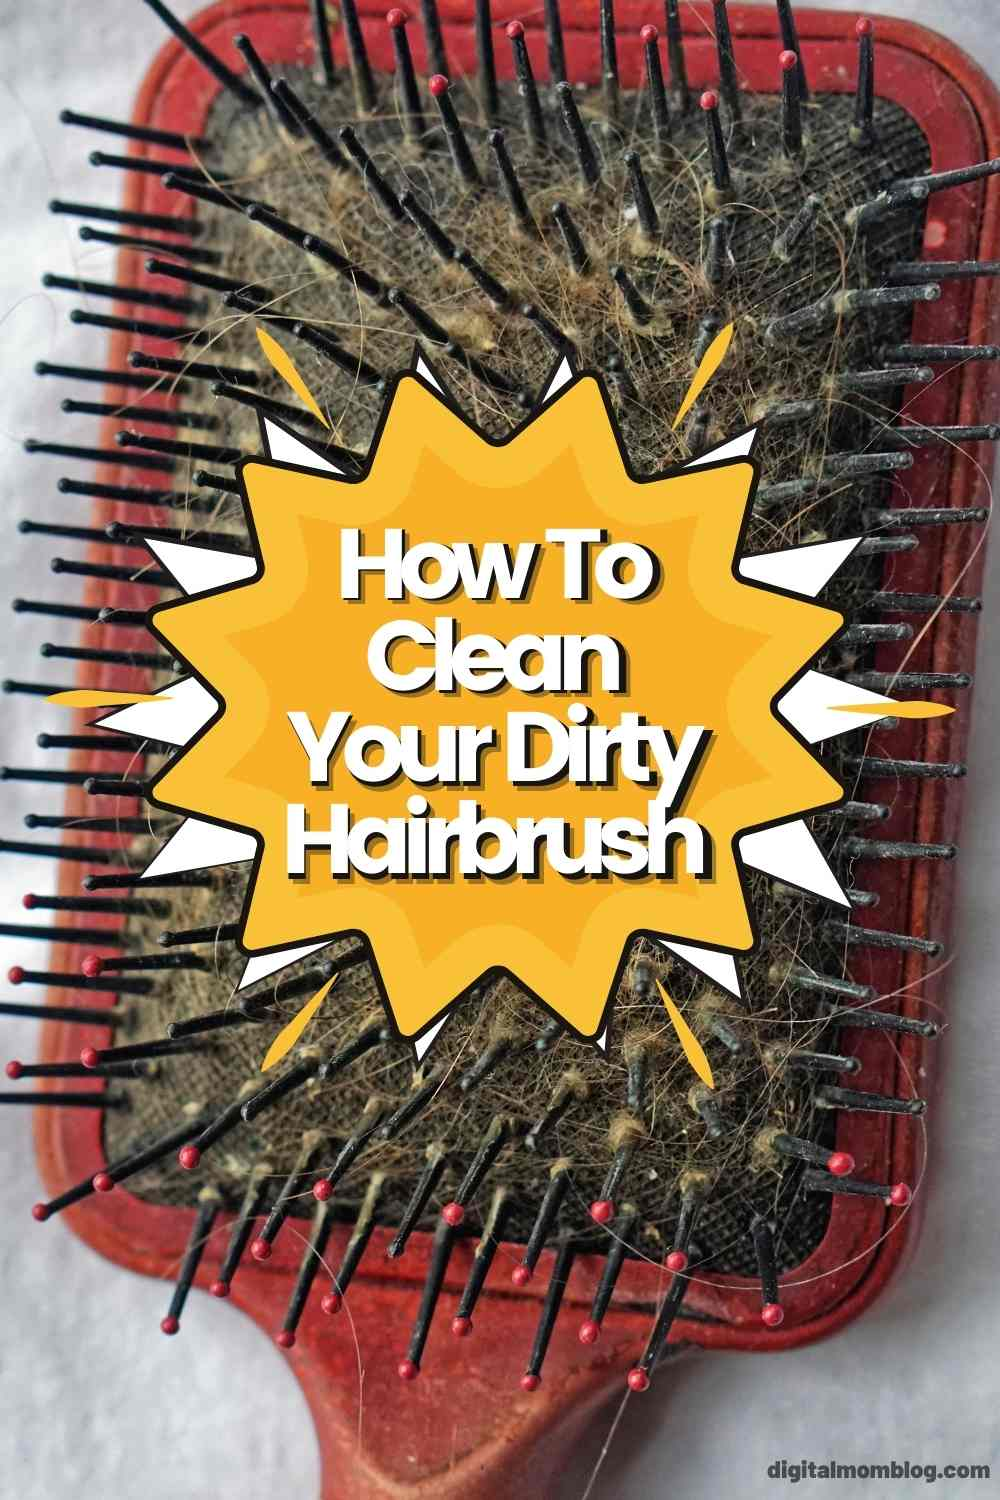 How To Clean Your Dirty Hairbrush